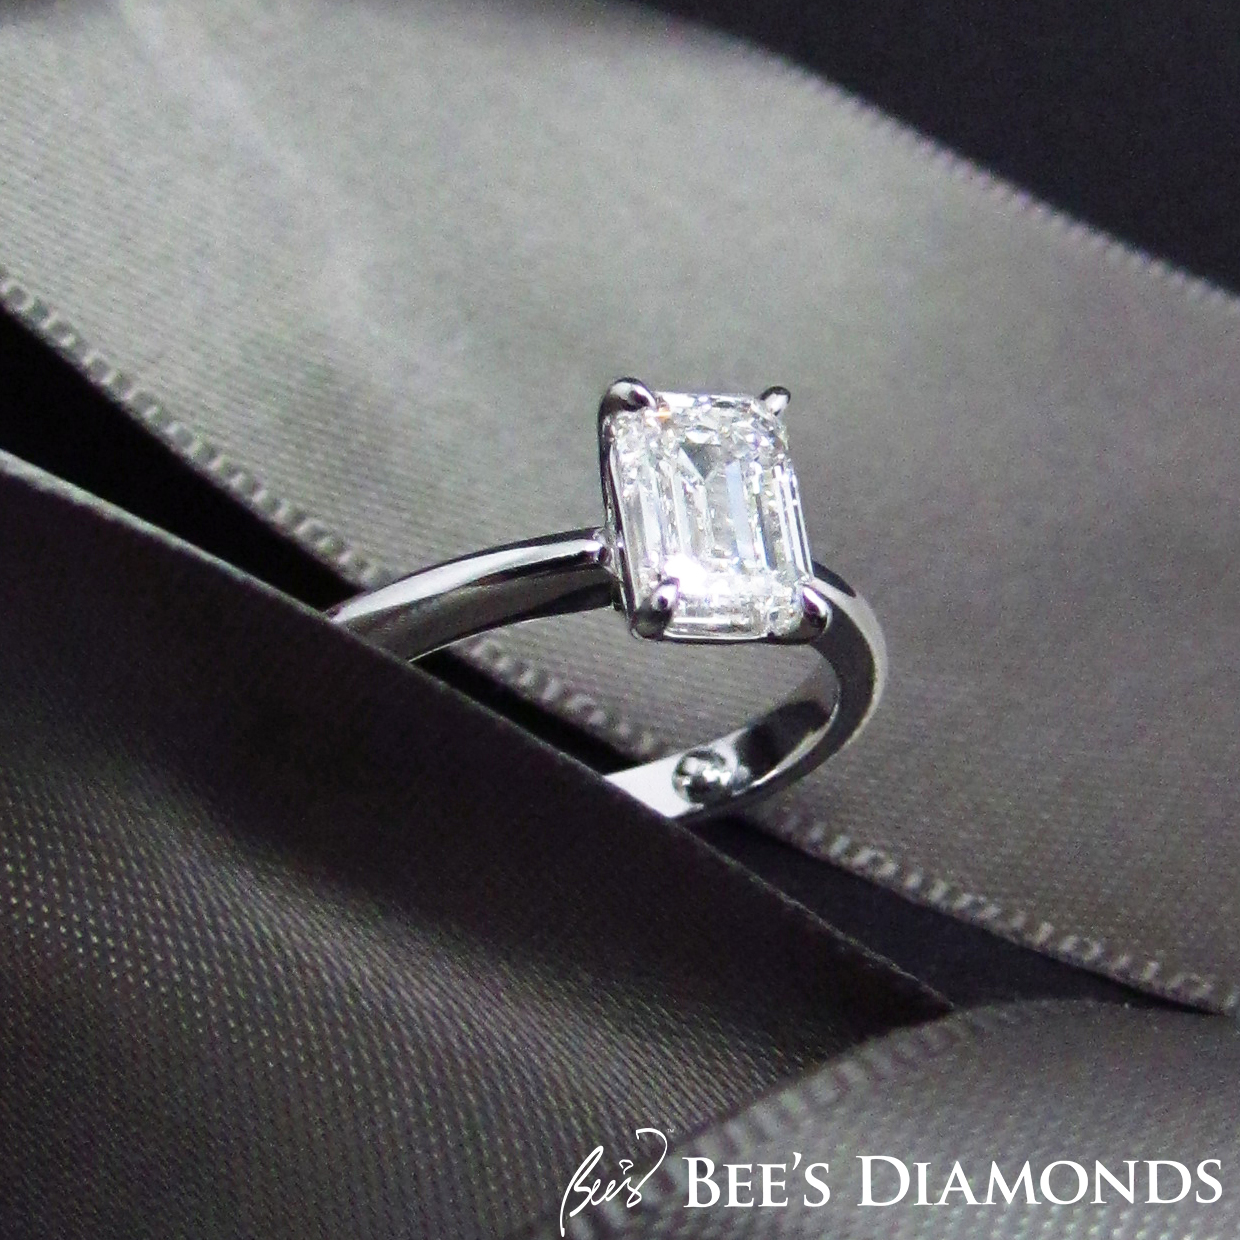 Emerald cut, simple elegant solitaire diamond engagement ring